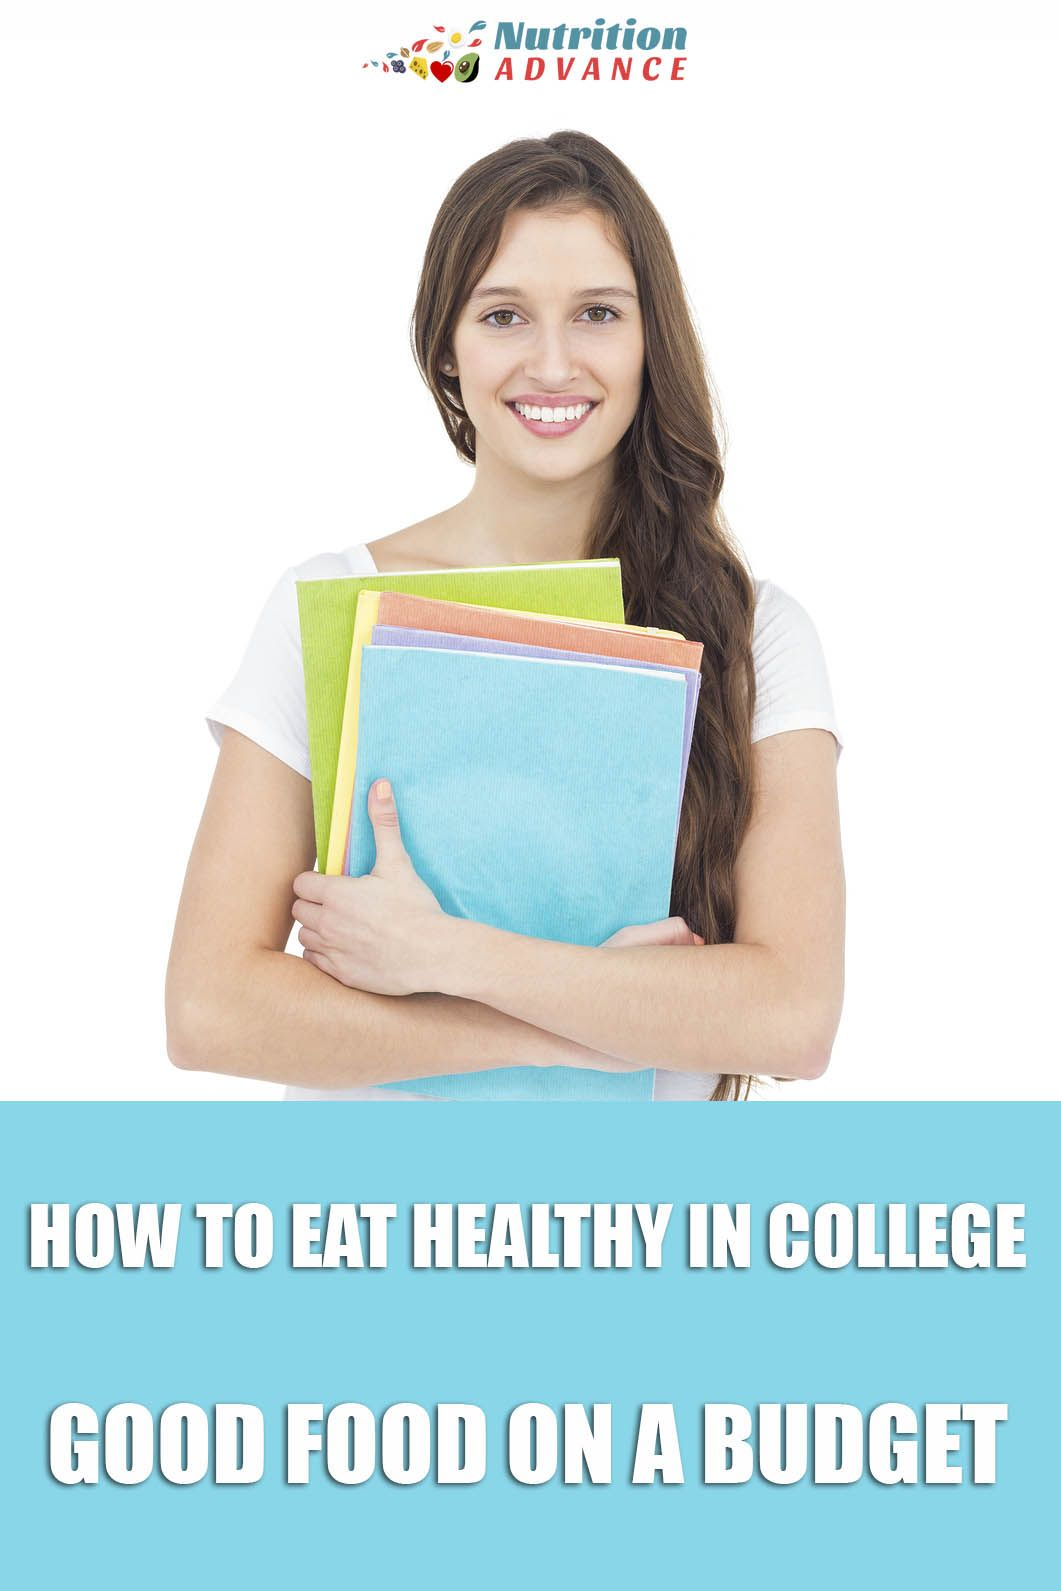 How to eat healthy in college: cheap healthy meals, practical advice, and some ideas for healthy college recipes. via @nutradvance